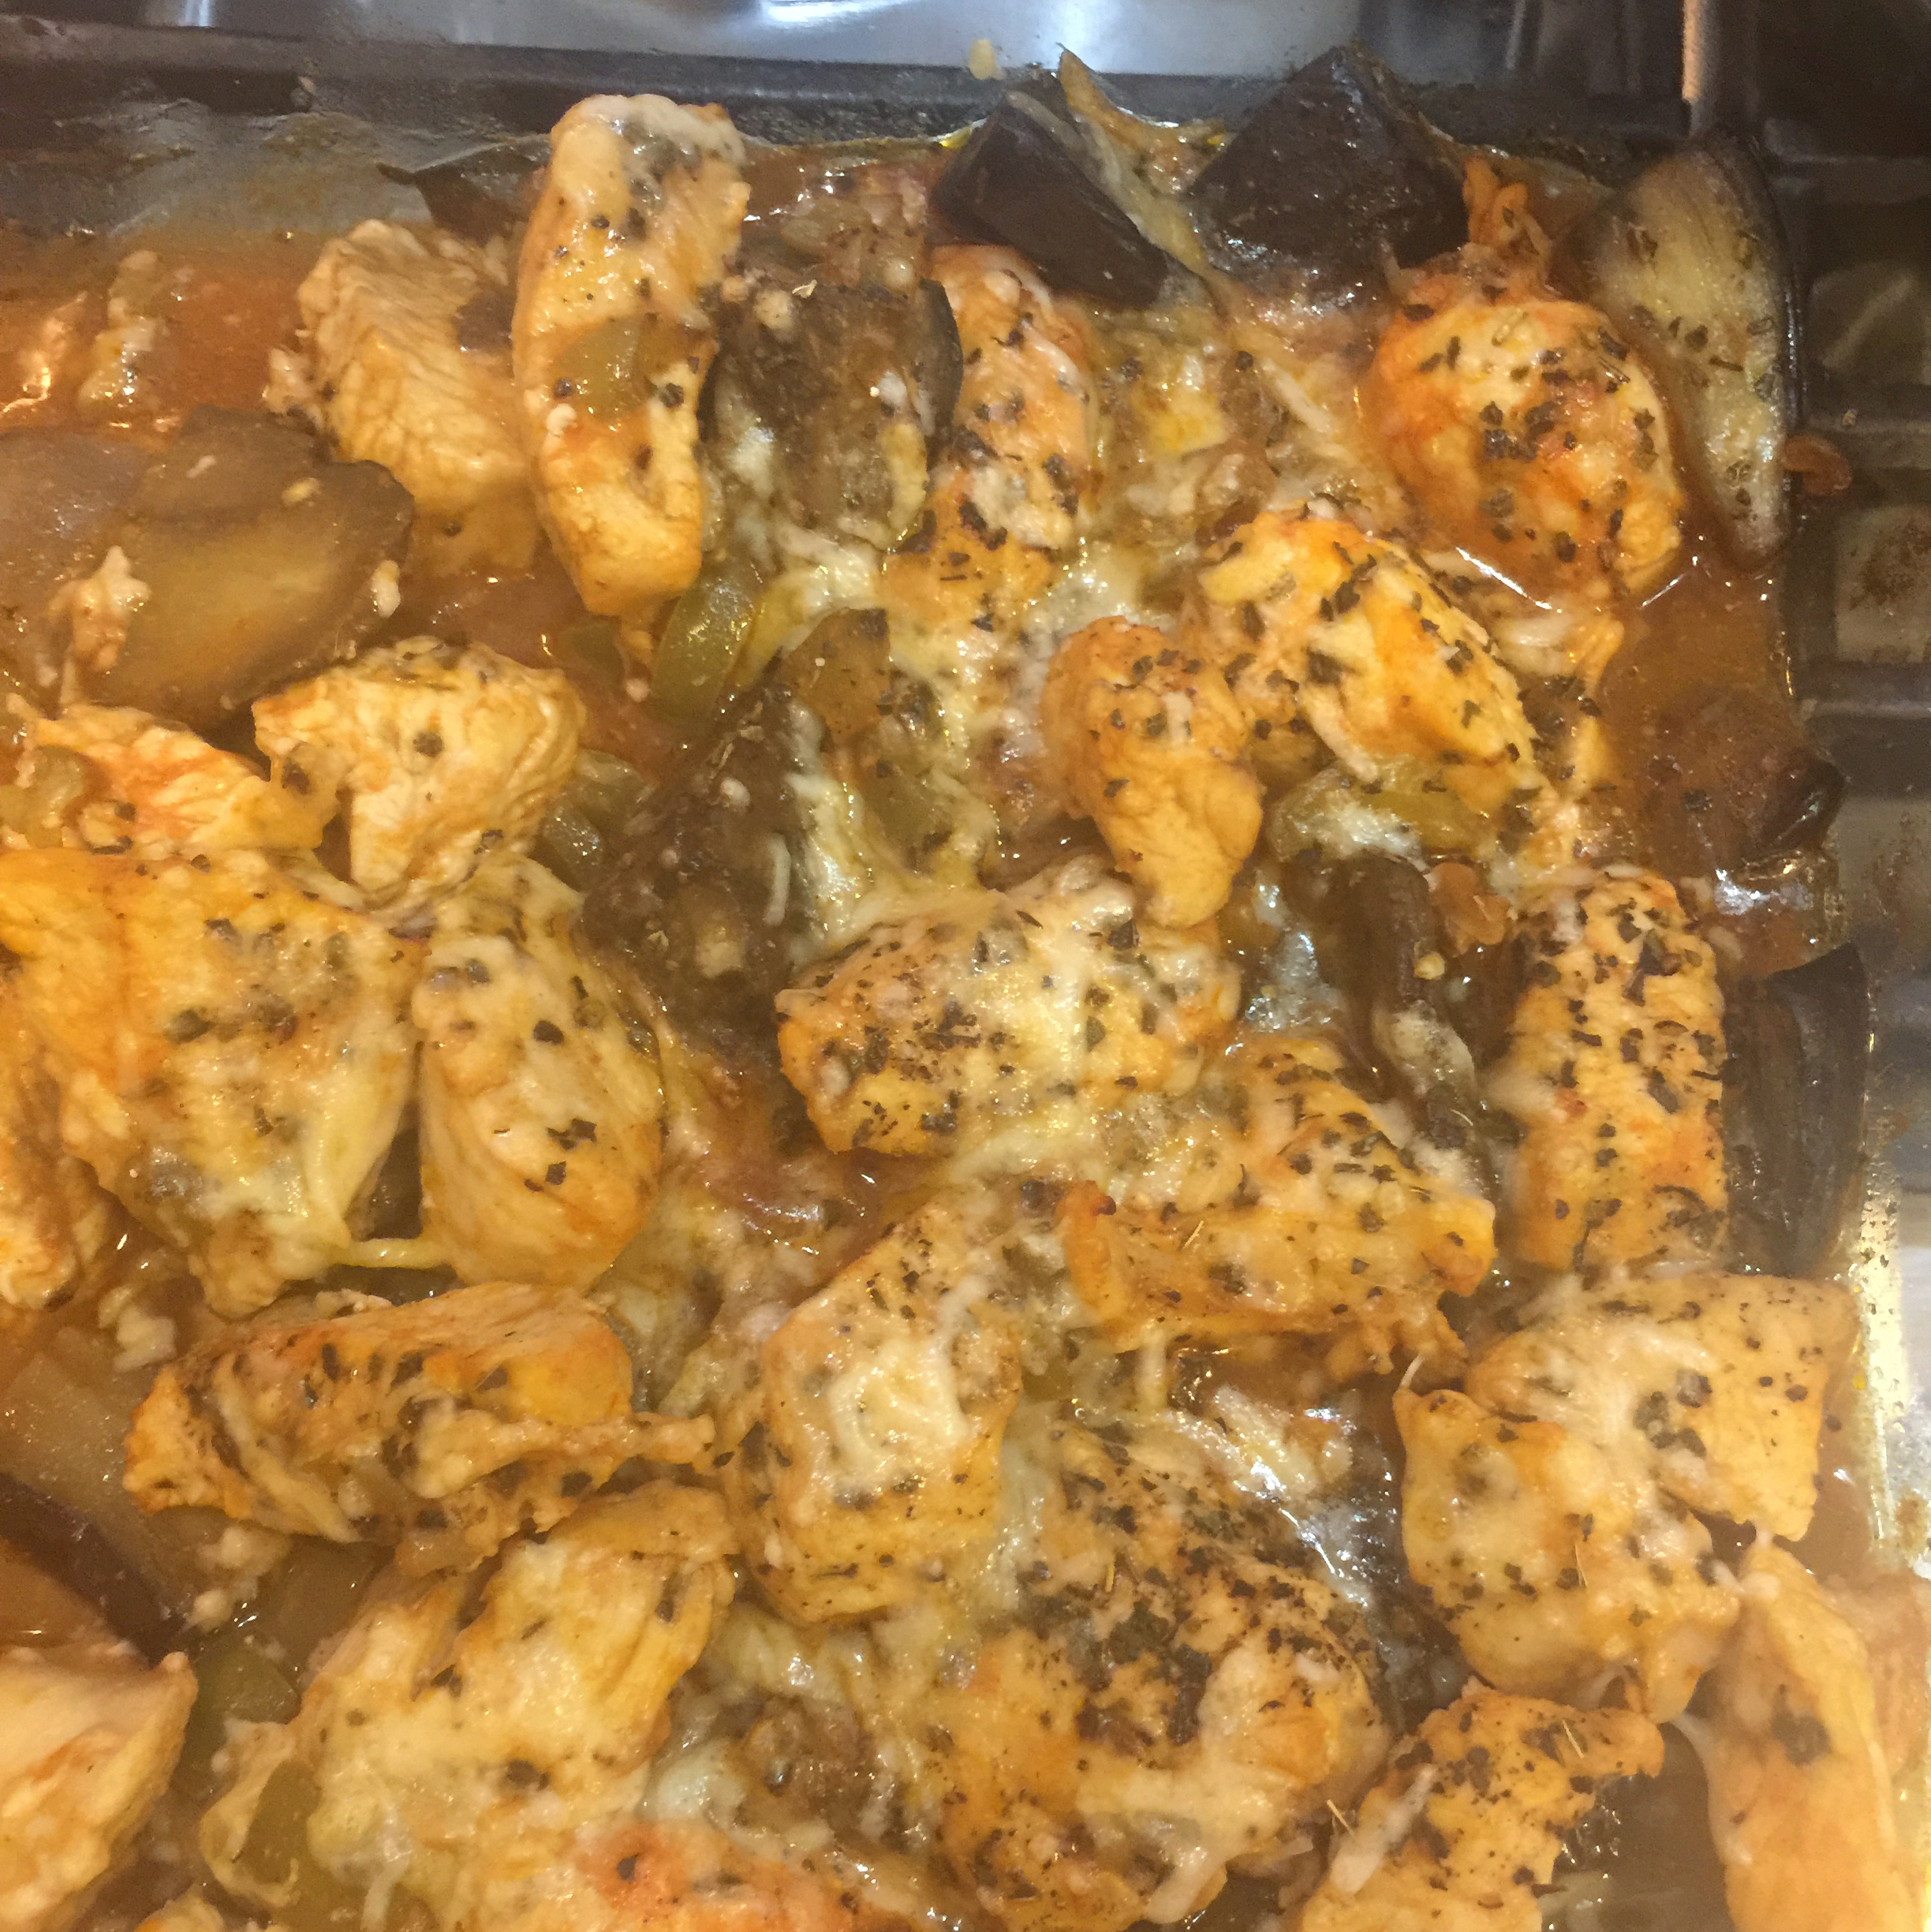 Mediterranean Chicken with Eggplant Shawna Robert Hilliard